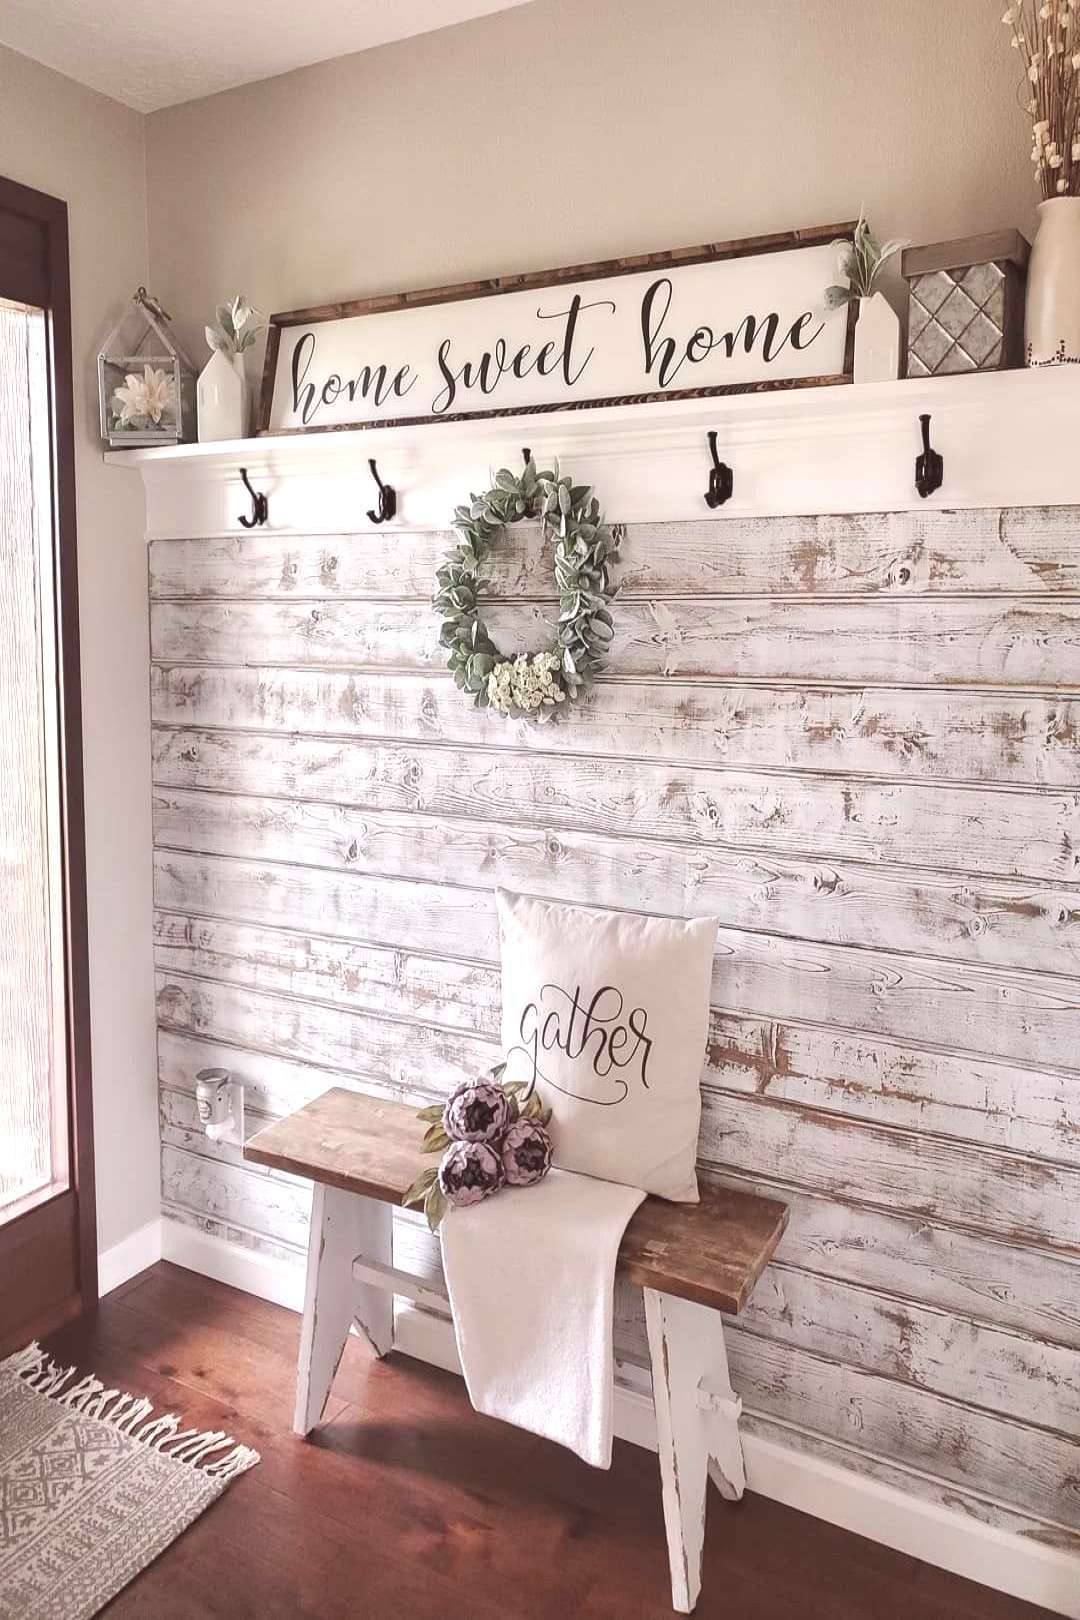 Gorgeous DIY Farmhouse Furniture and Decor Ideas For A Rustic Country Home – DIY amp Crafts  